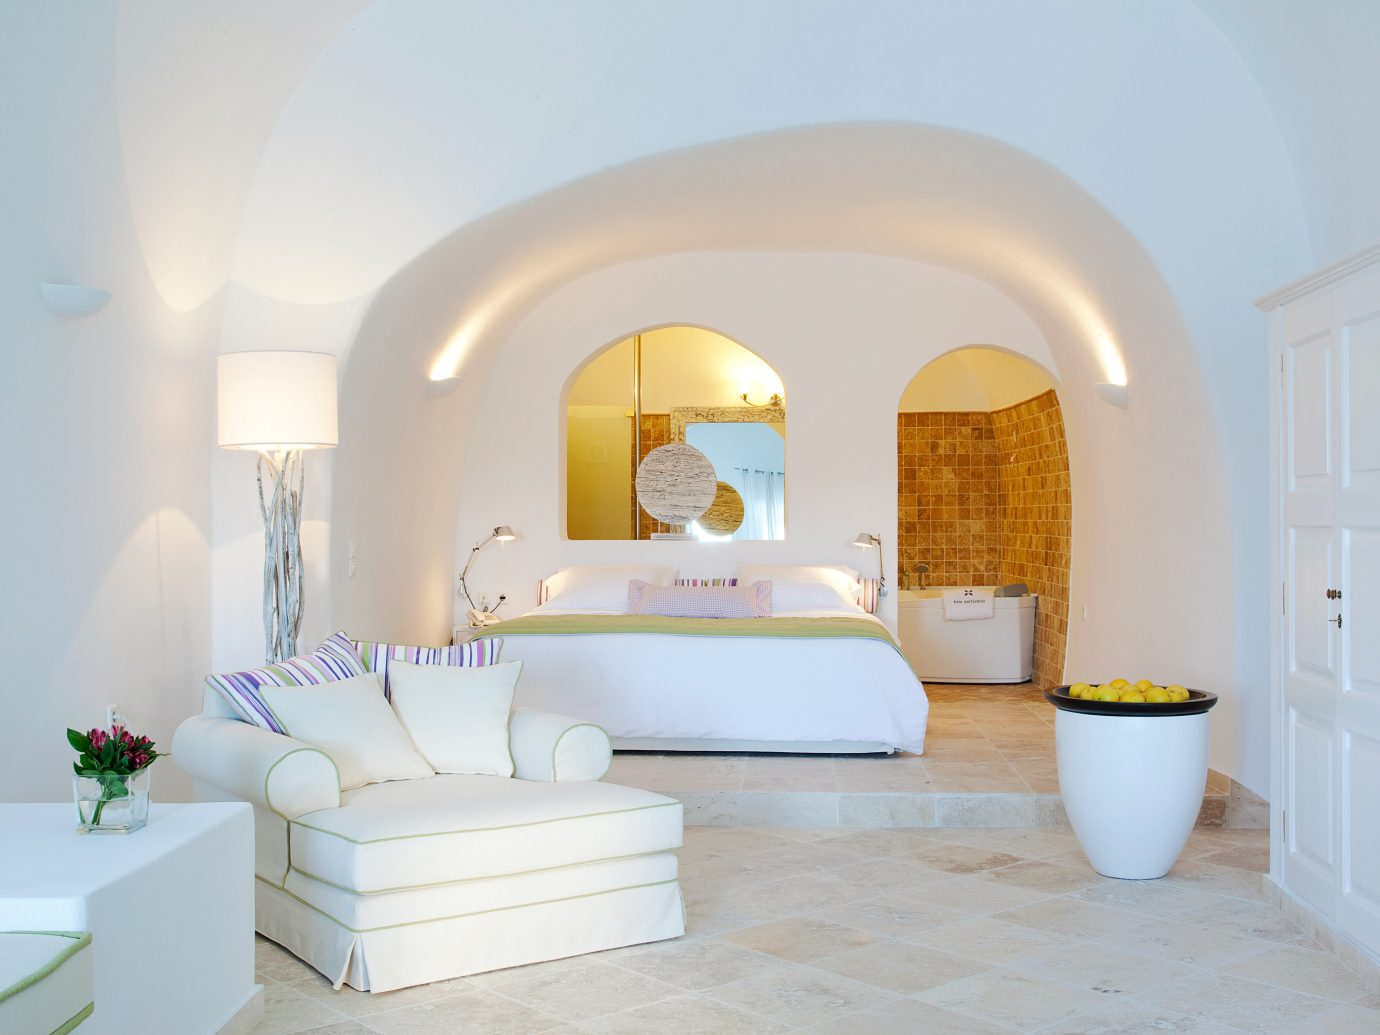 Bedroom Elegant Greece Hotels Luxury Modern Santorini Suite wall room property living room white estate interior design floor furniture bed home real estate Villa cottage ceiling